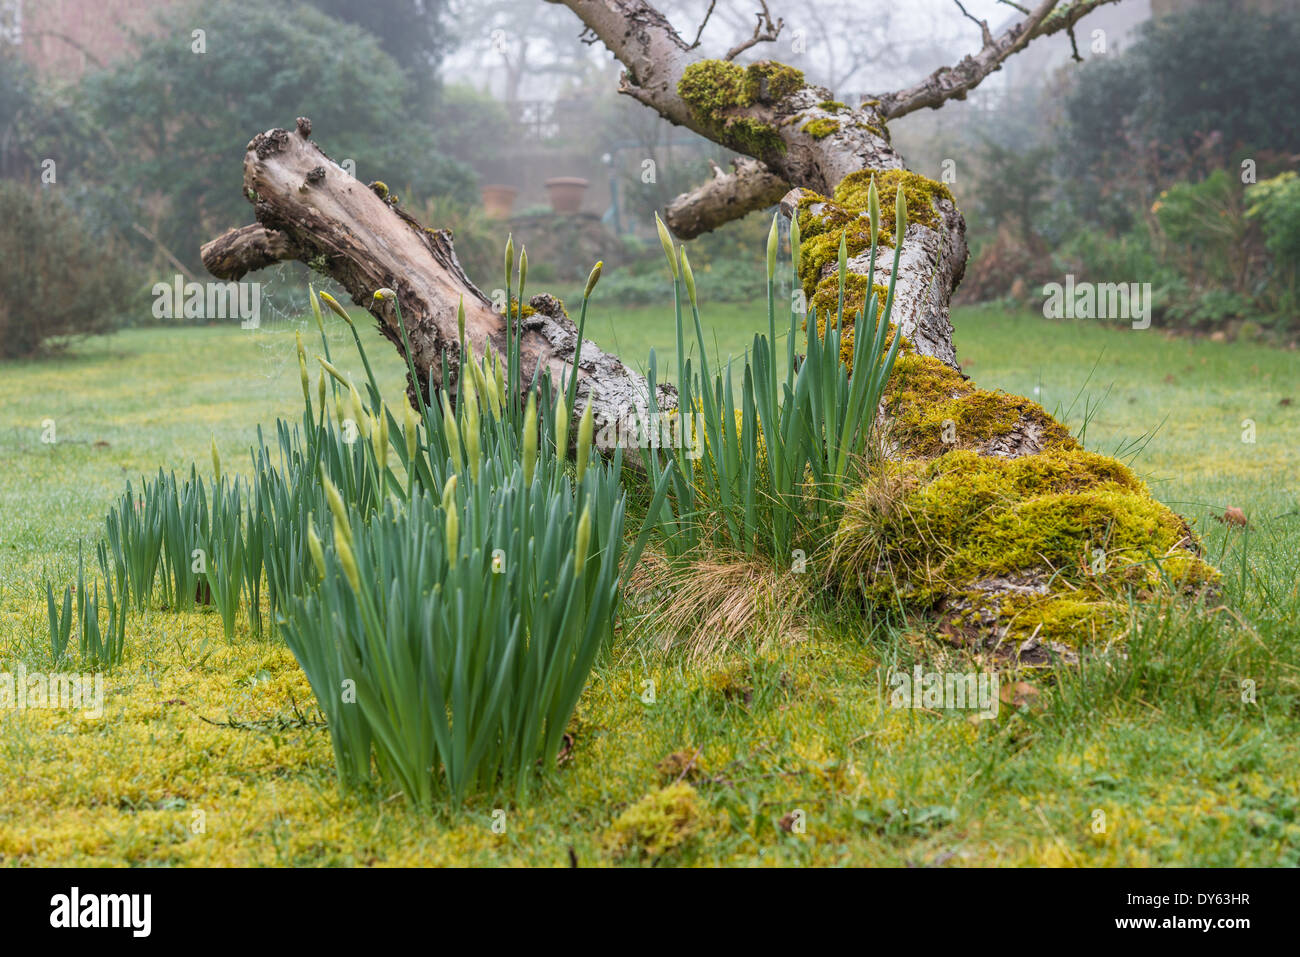 Daffodils growing in garden under old apple tree in spring. Fourth of sequence of 10 (ten) images photographed over five weeks. - Stock Image